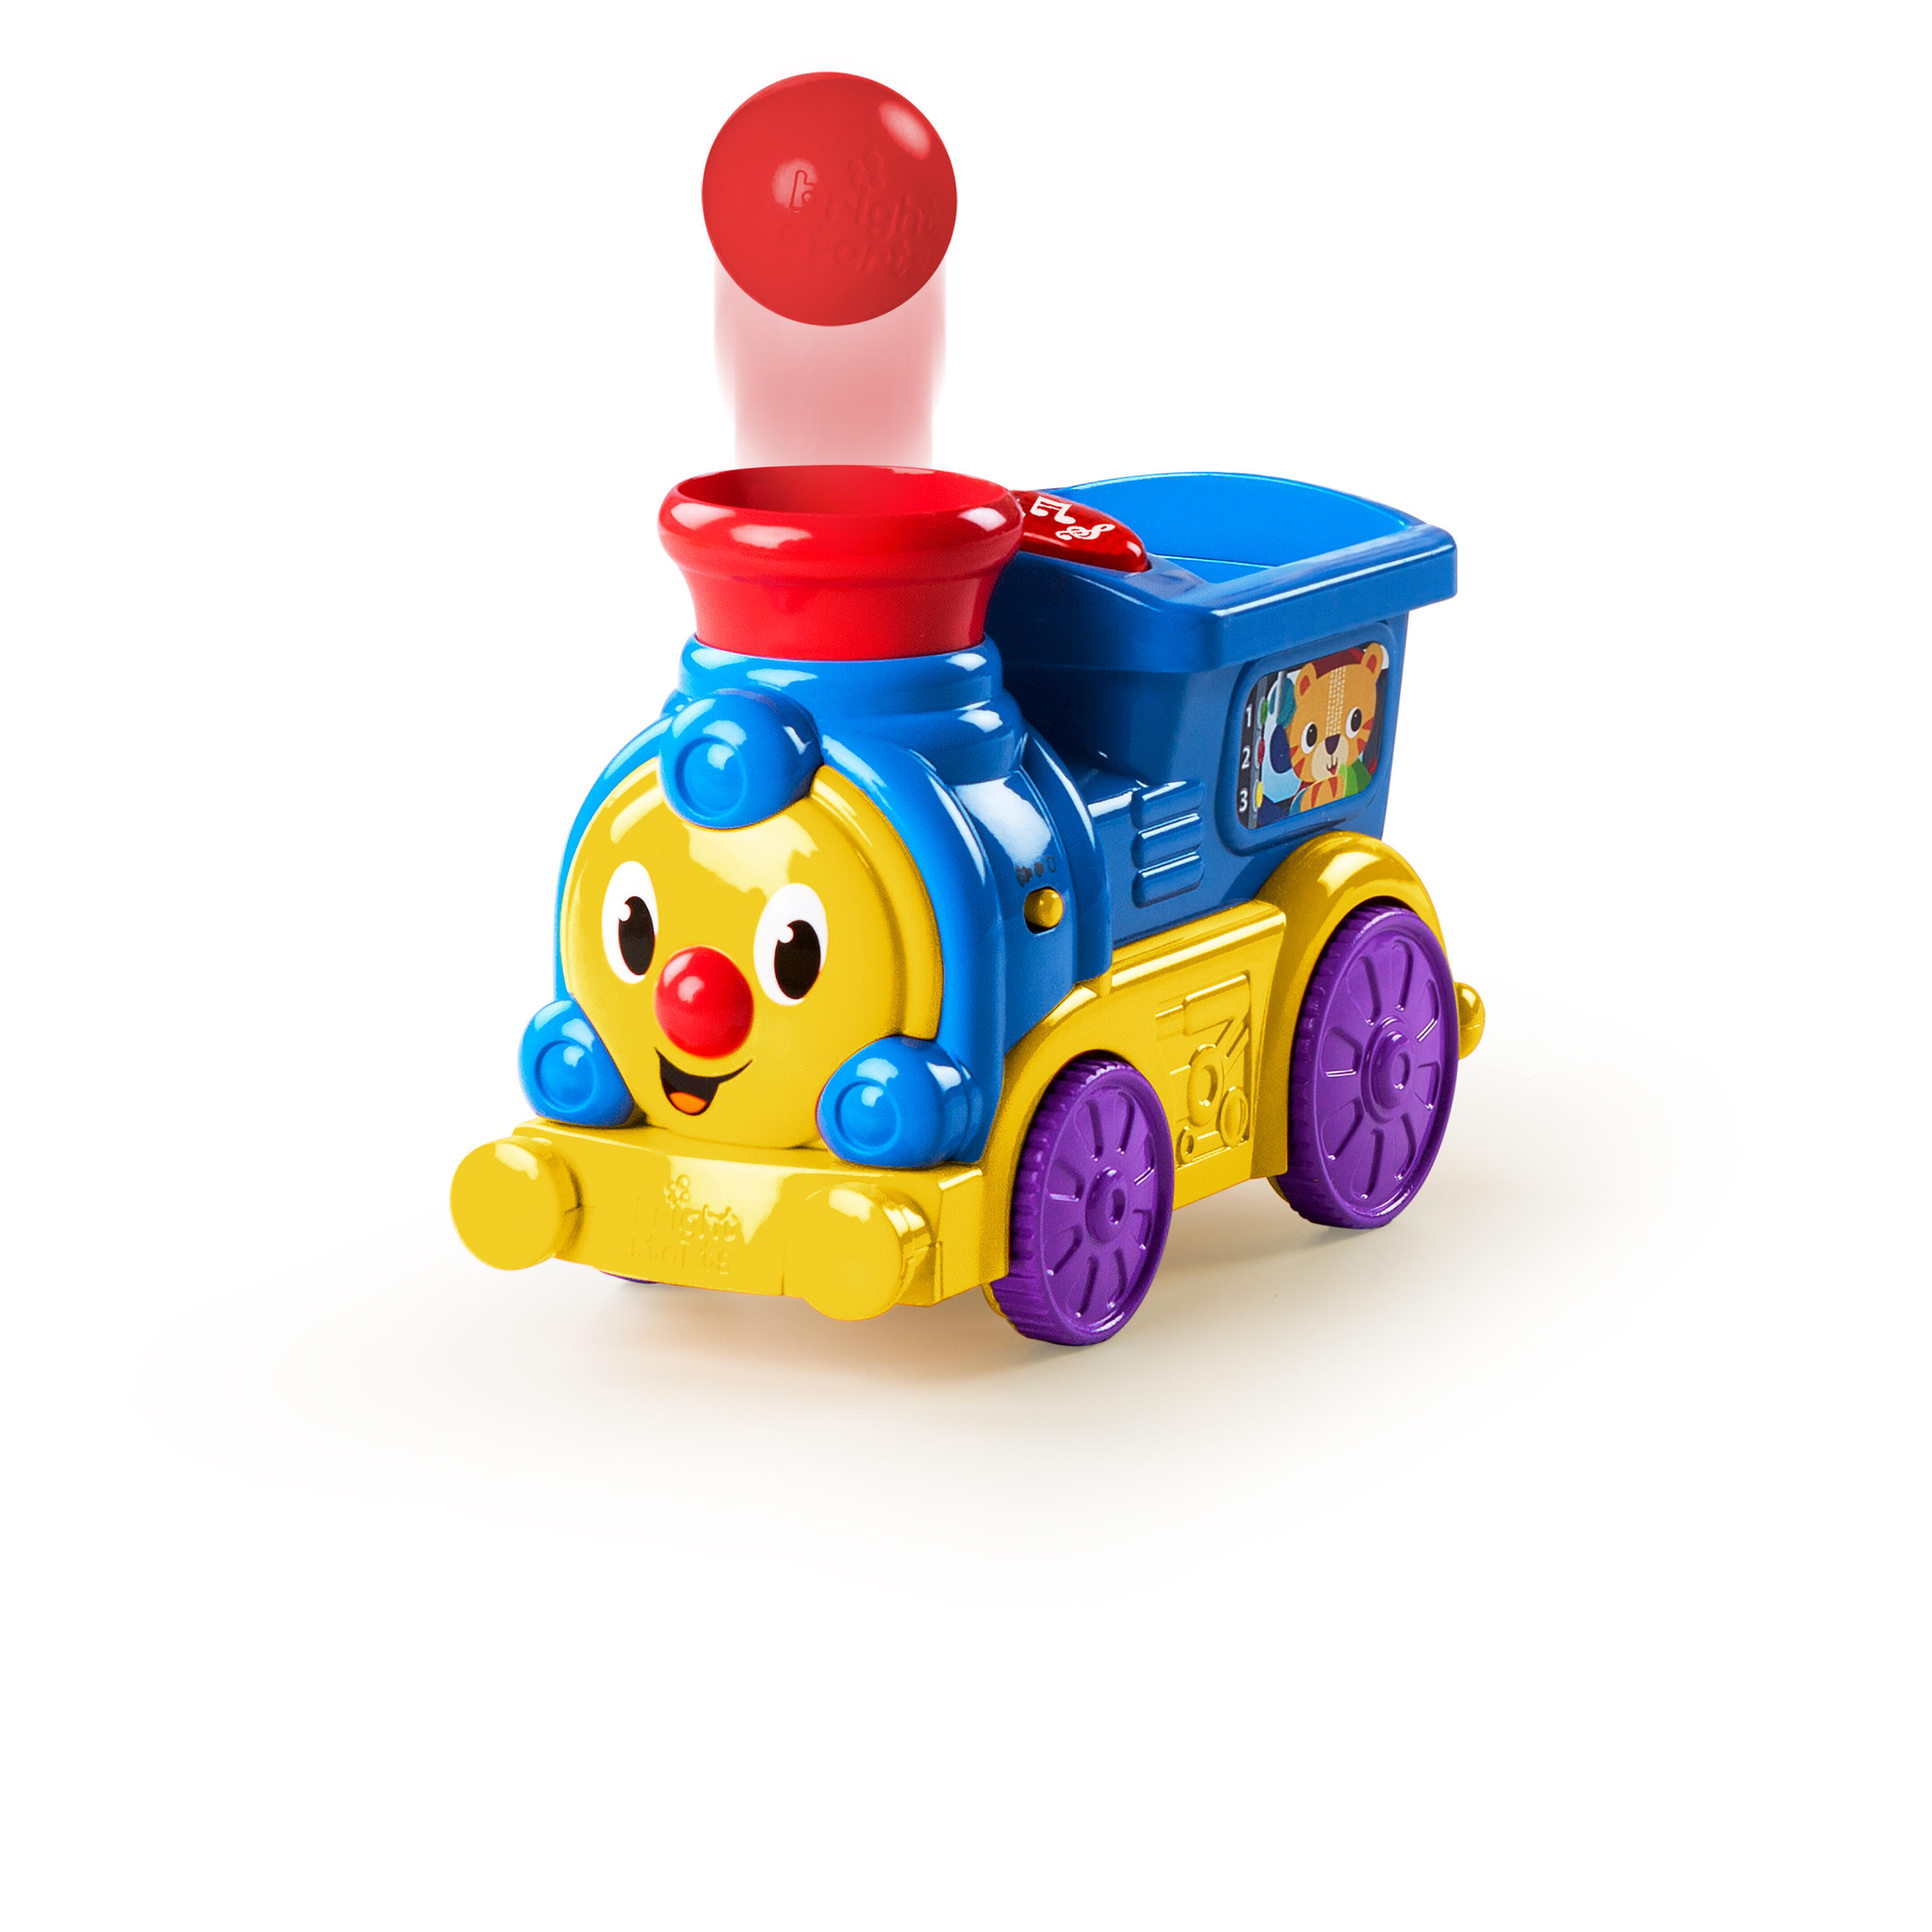 Bright Starts Roll & Pop Train Toy Ball Popper Musical Activity Toy